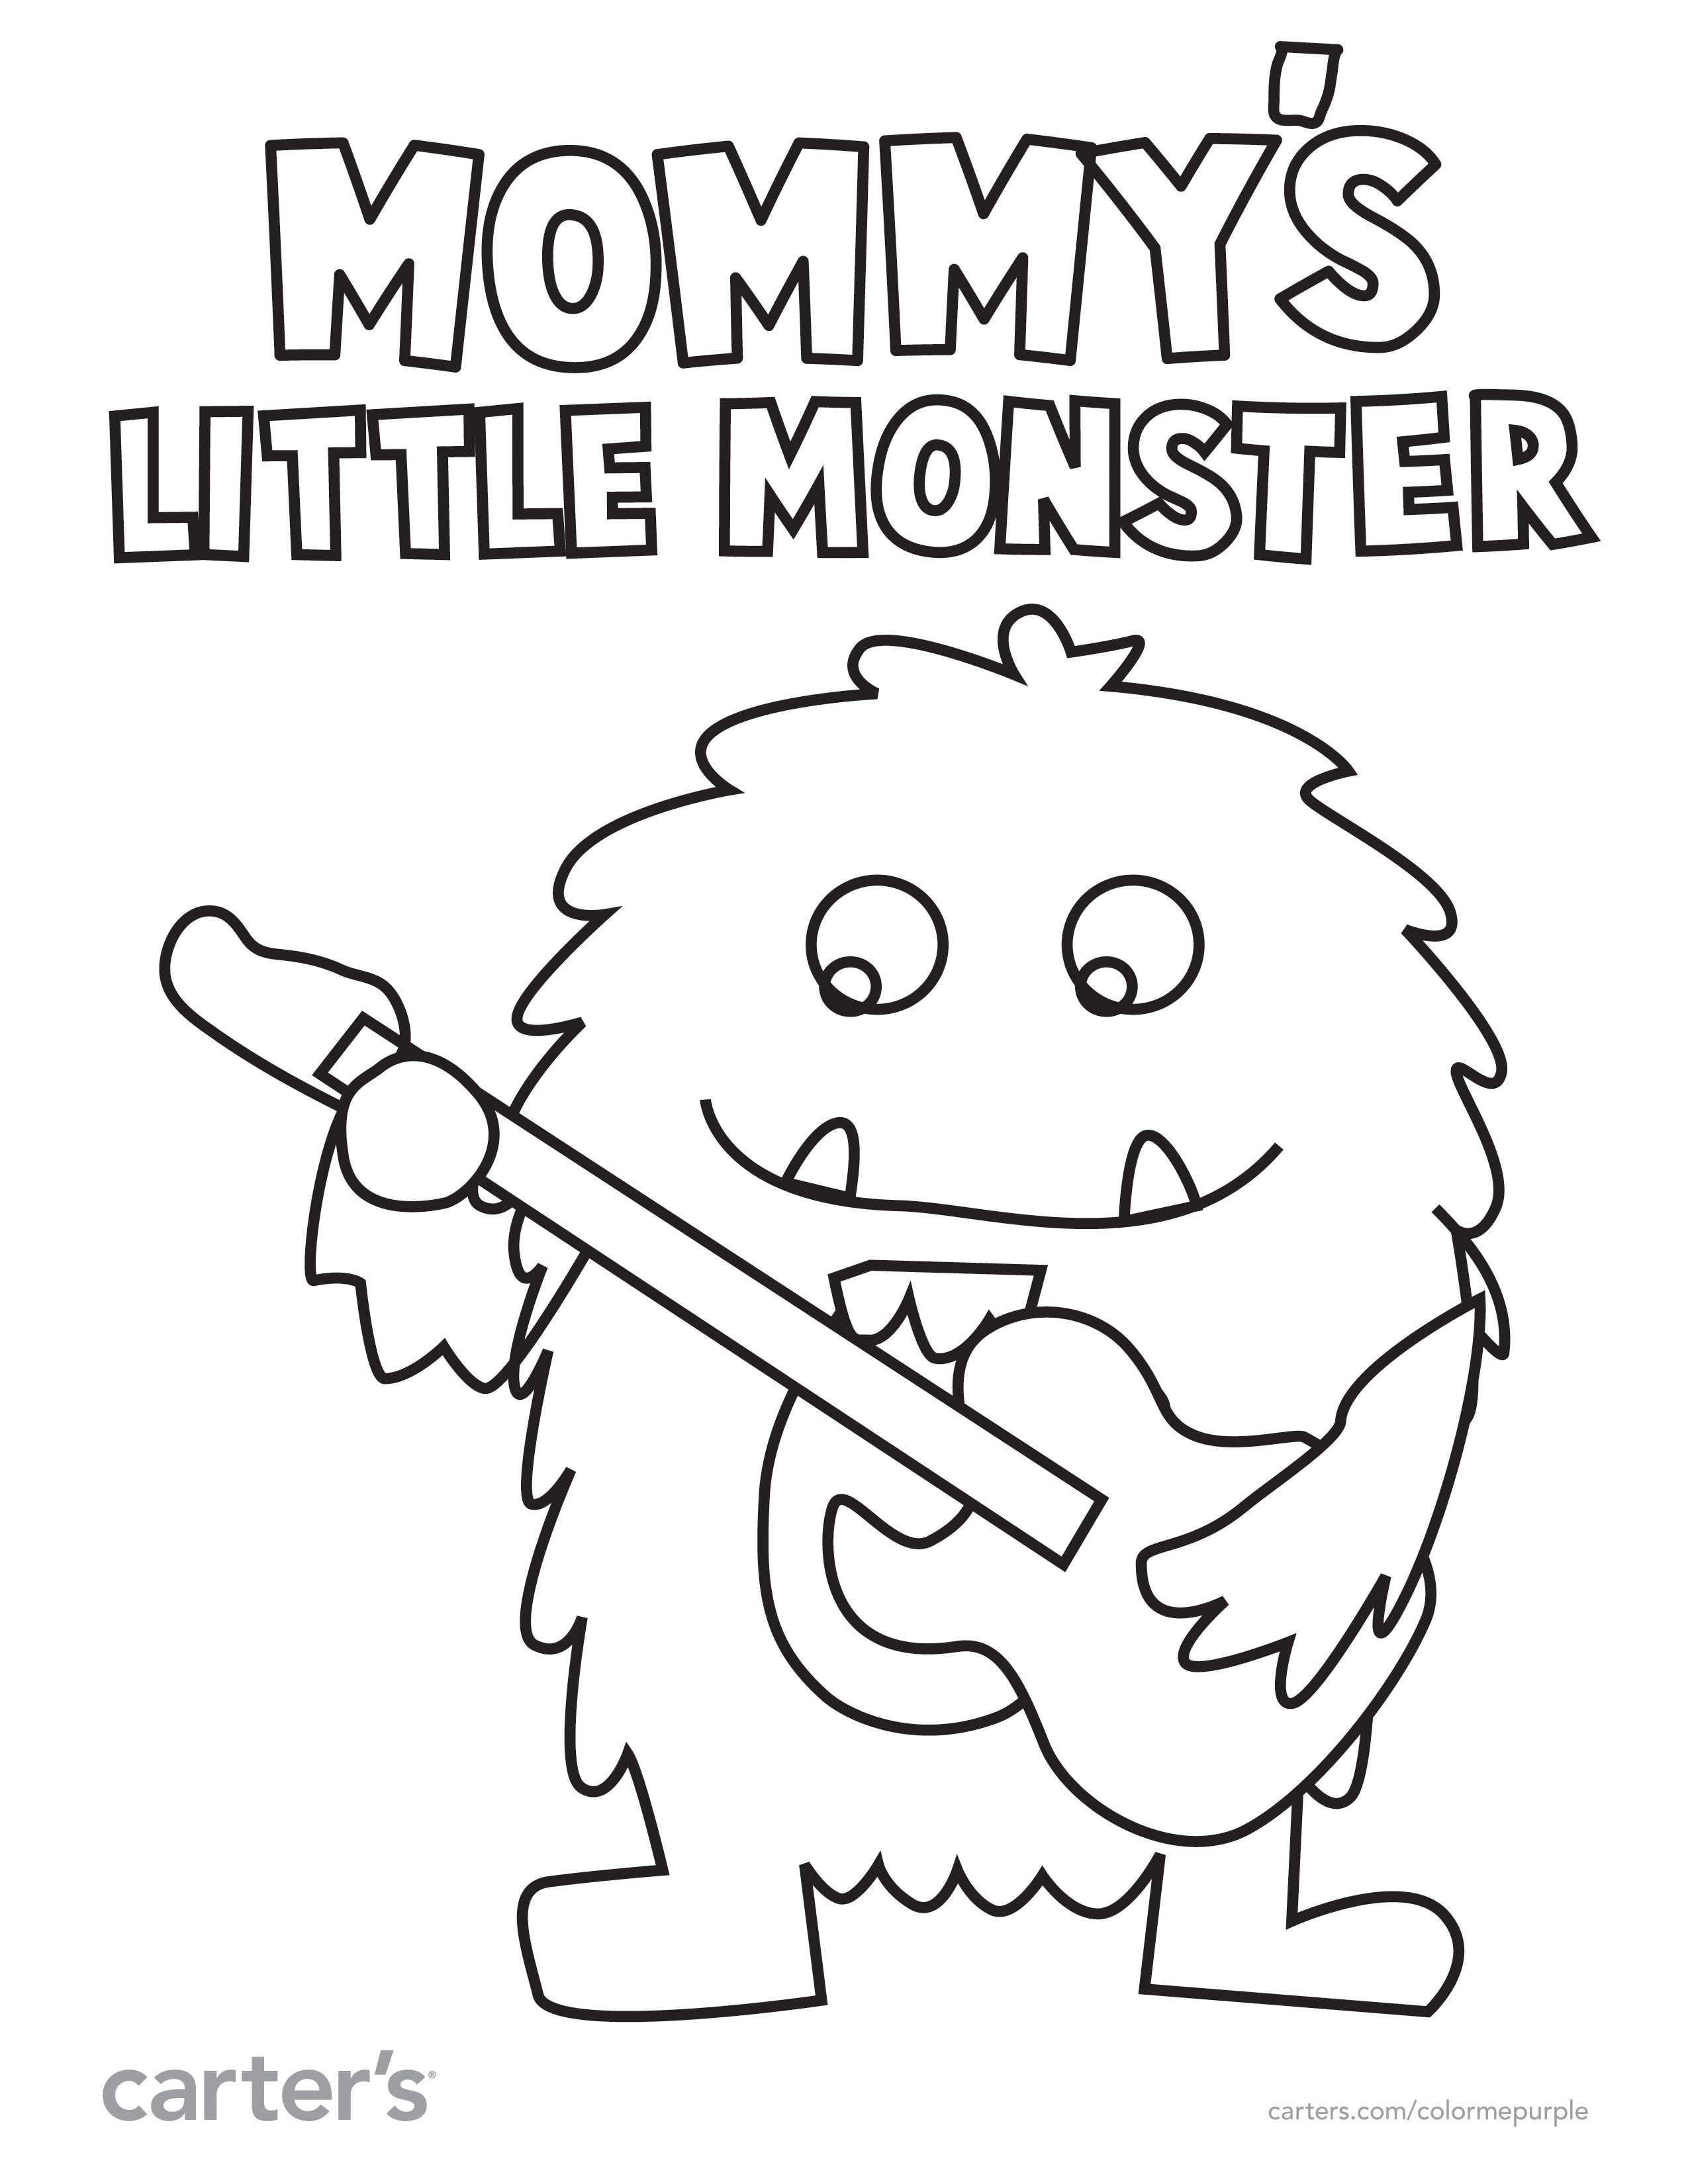 mommy\'s little monster is ready to play - other fun coloring pages ...